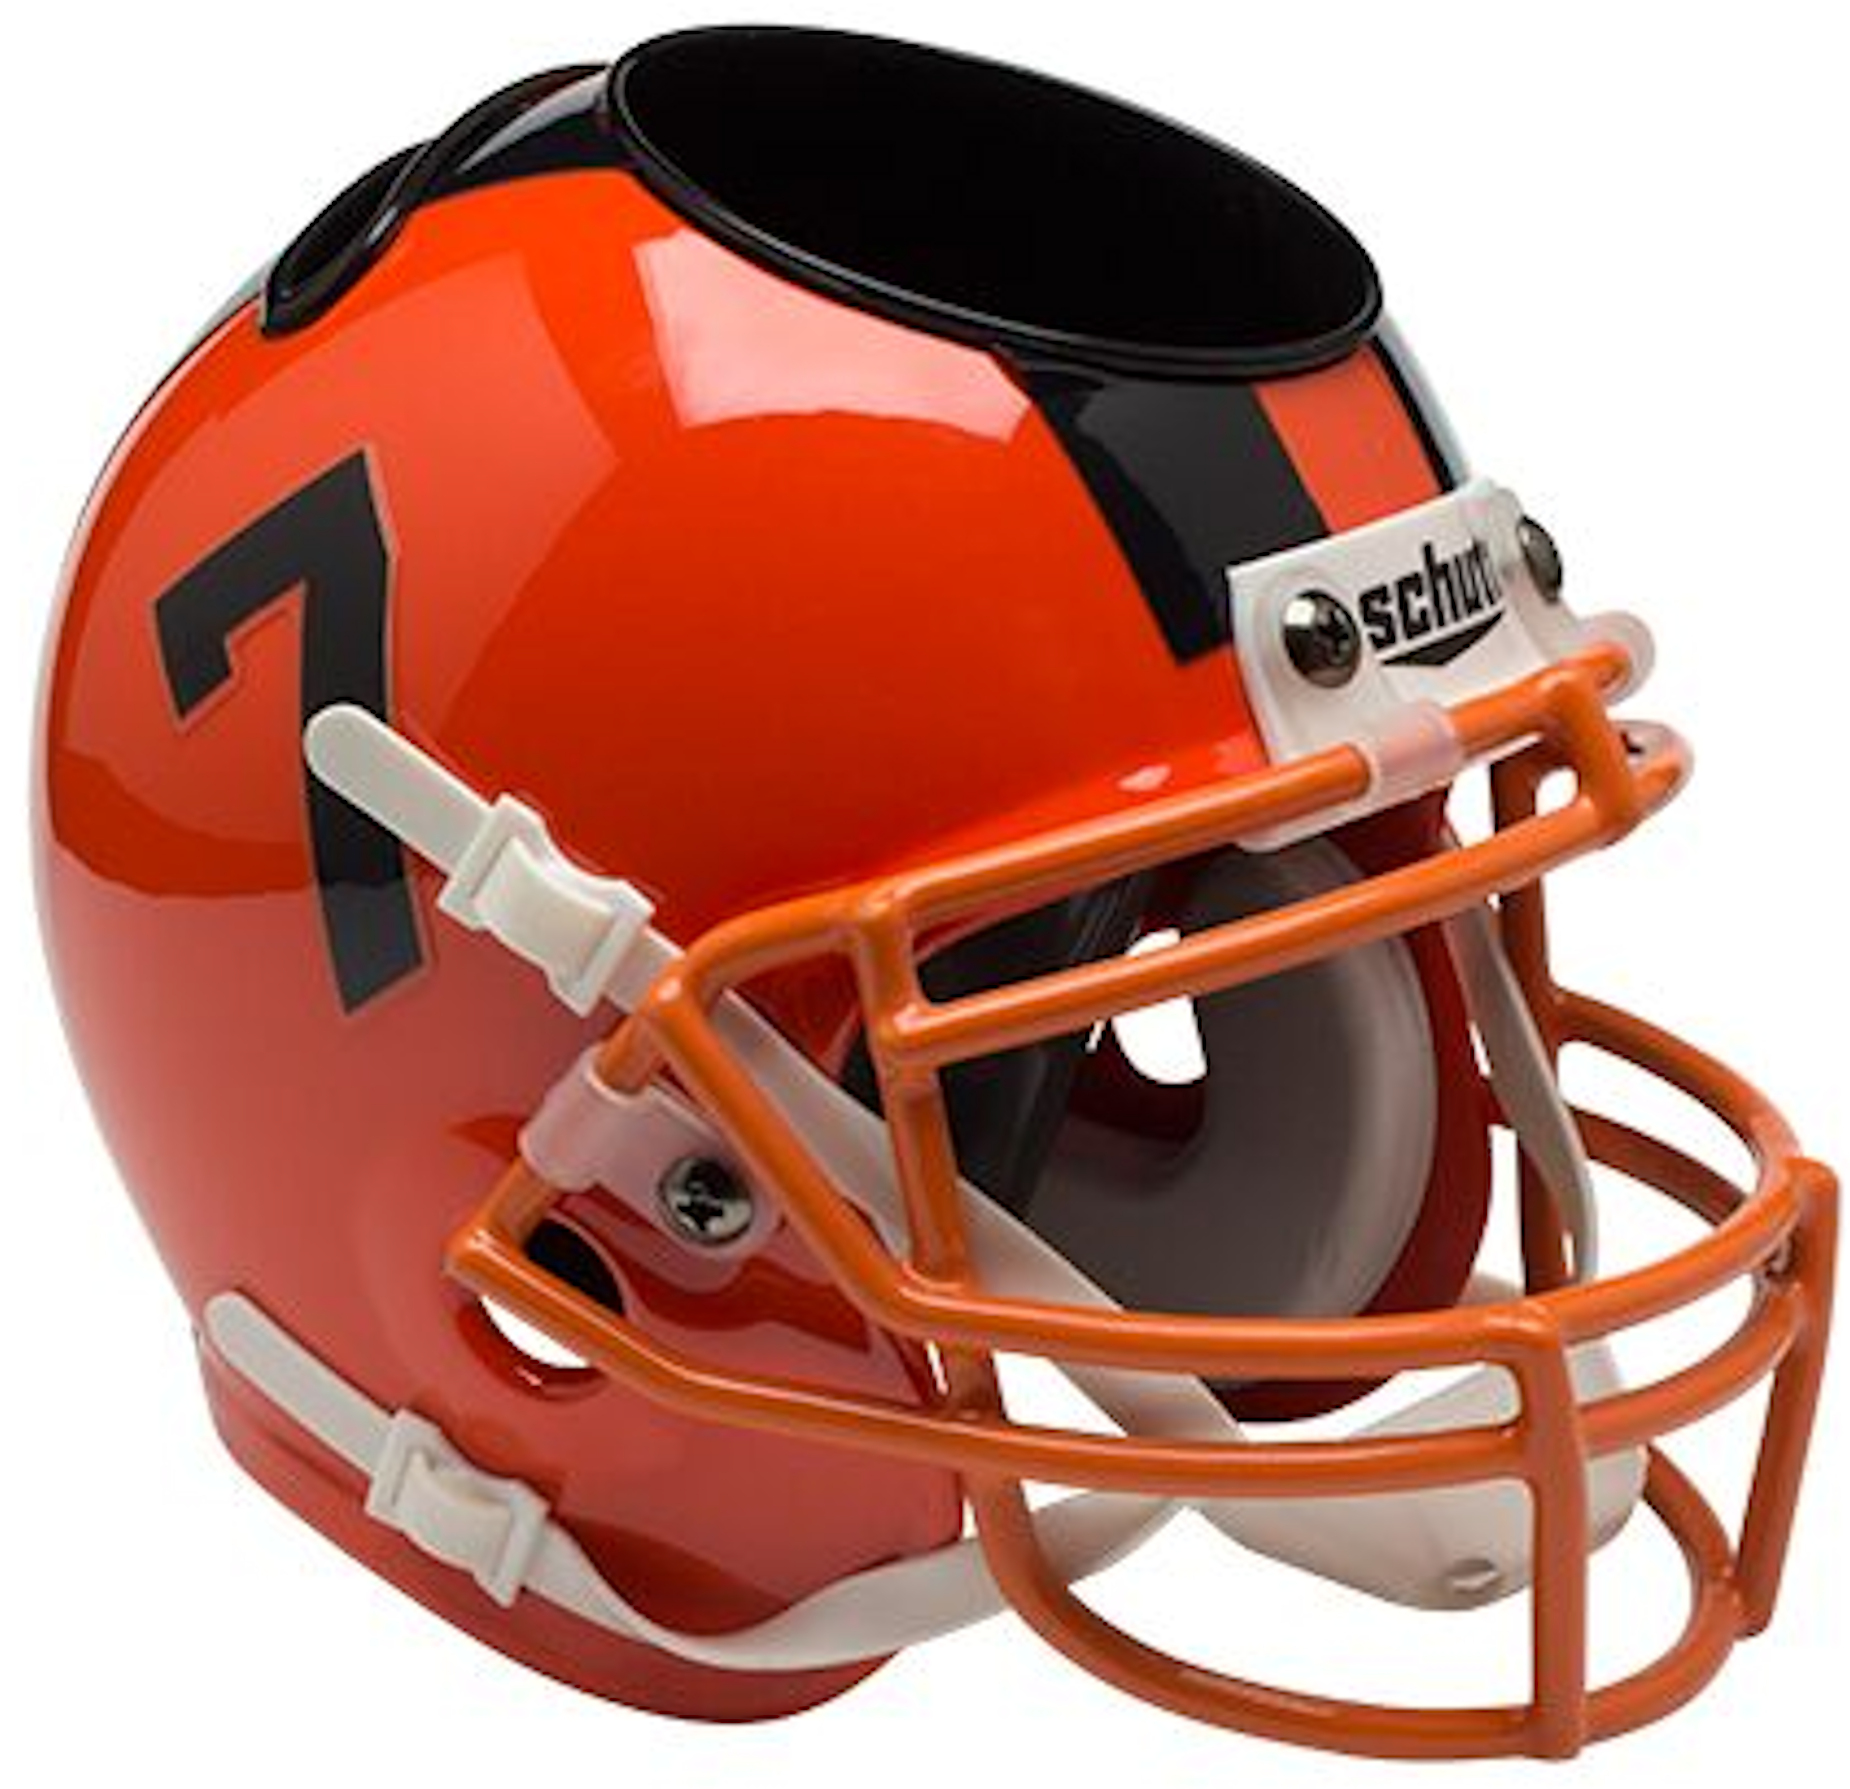 Oregon State Beavers Miniature Football Helmet Desk Caddy <B>Orange</B>